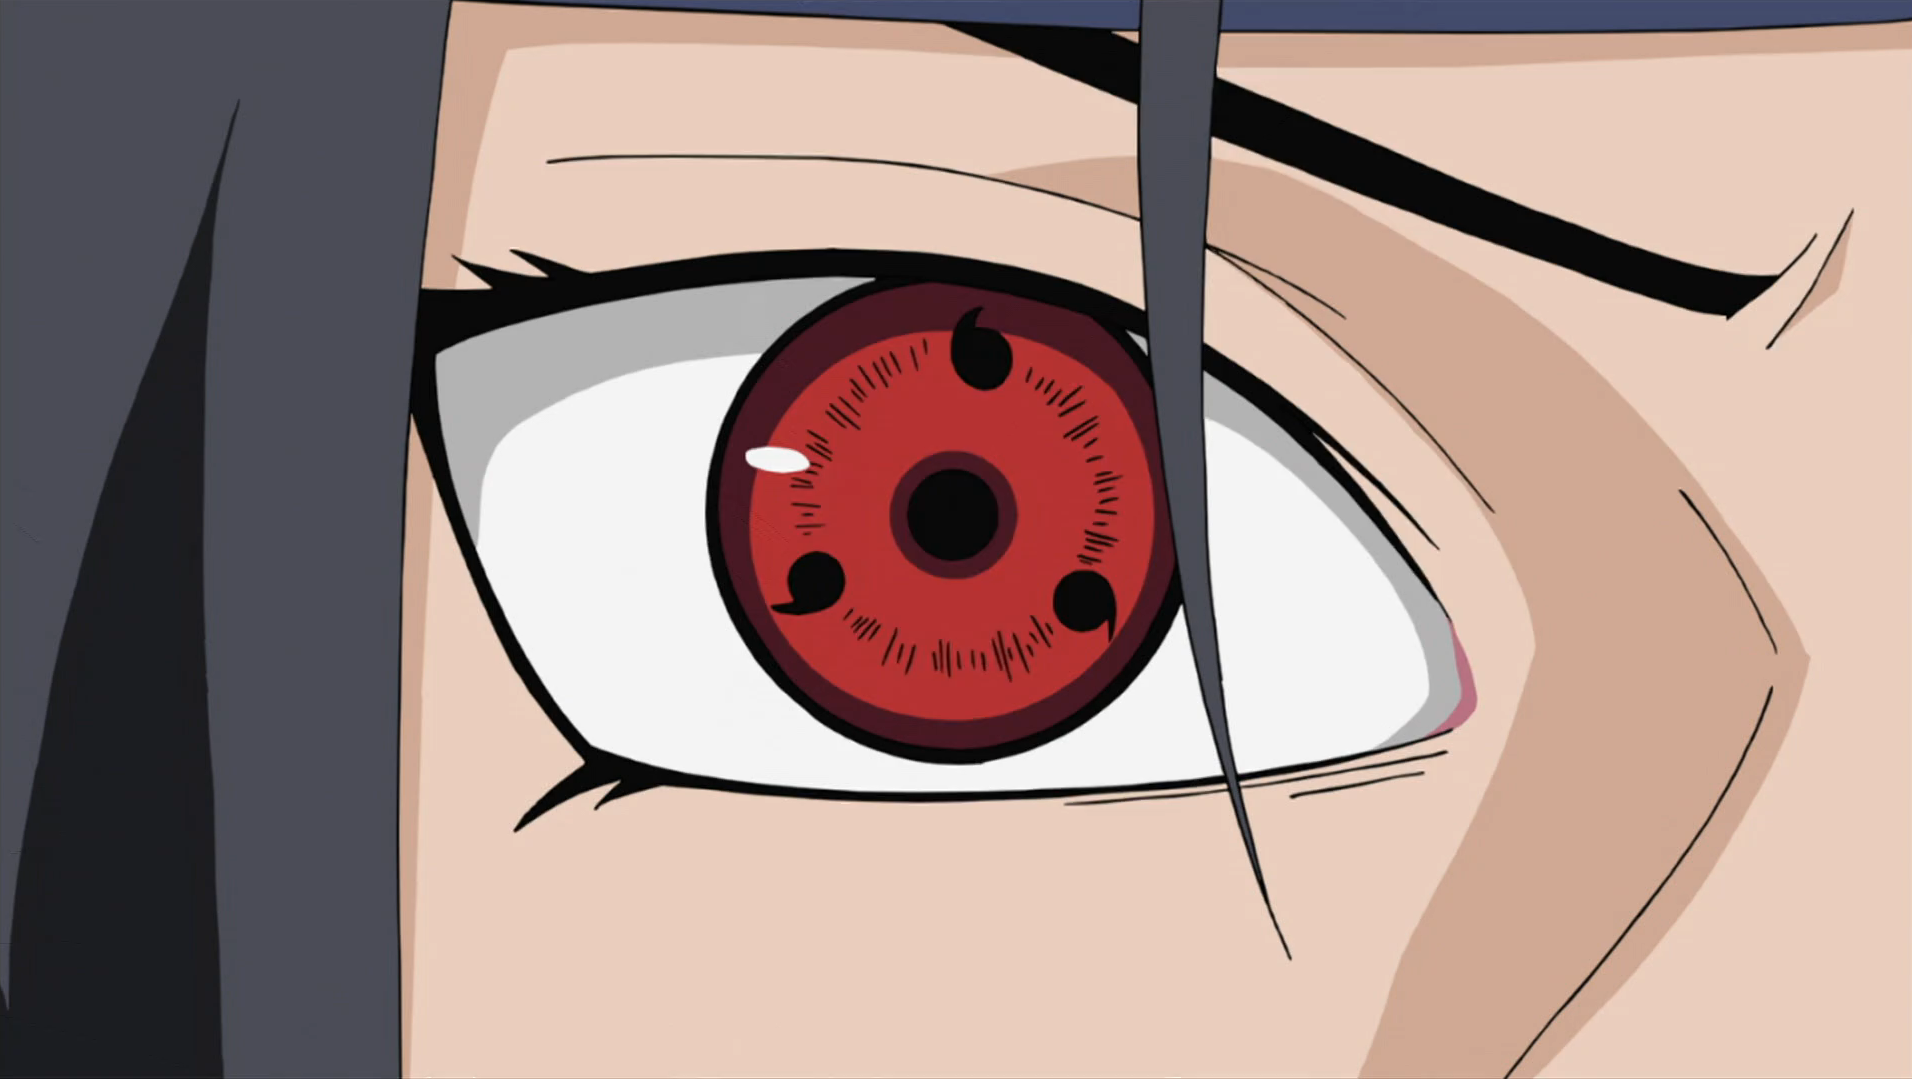 sharingan uzumaki naruto - photo #32